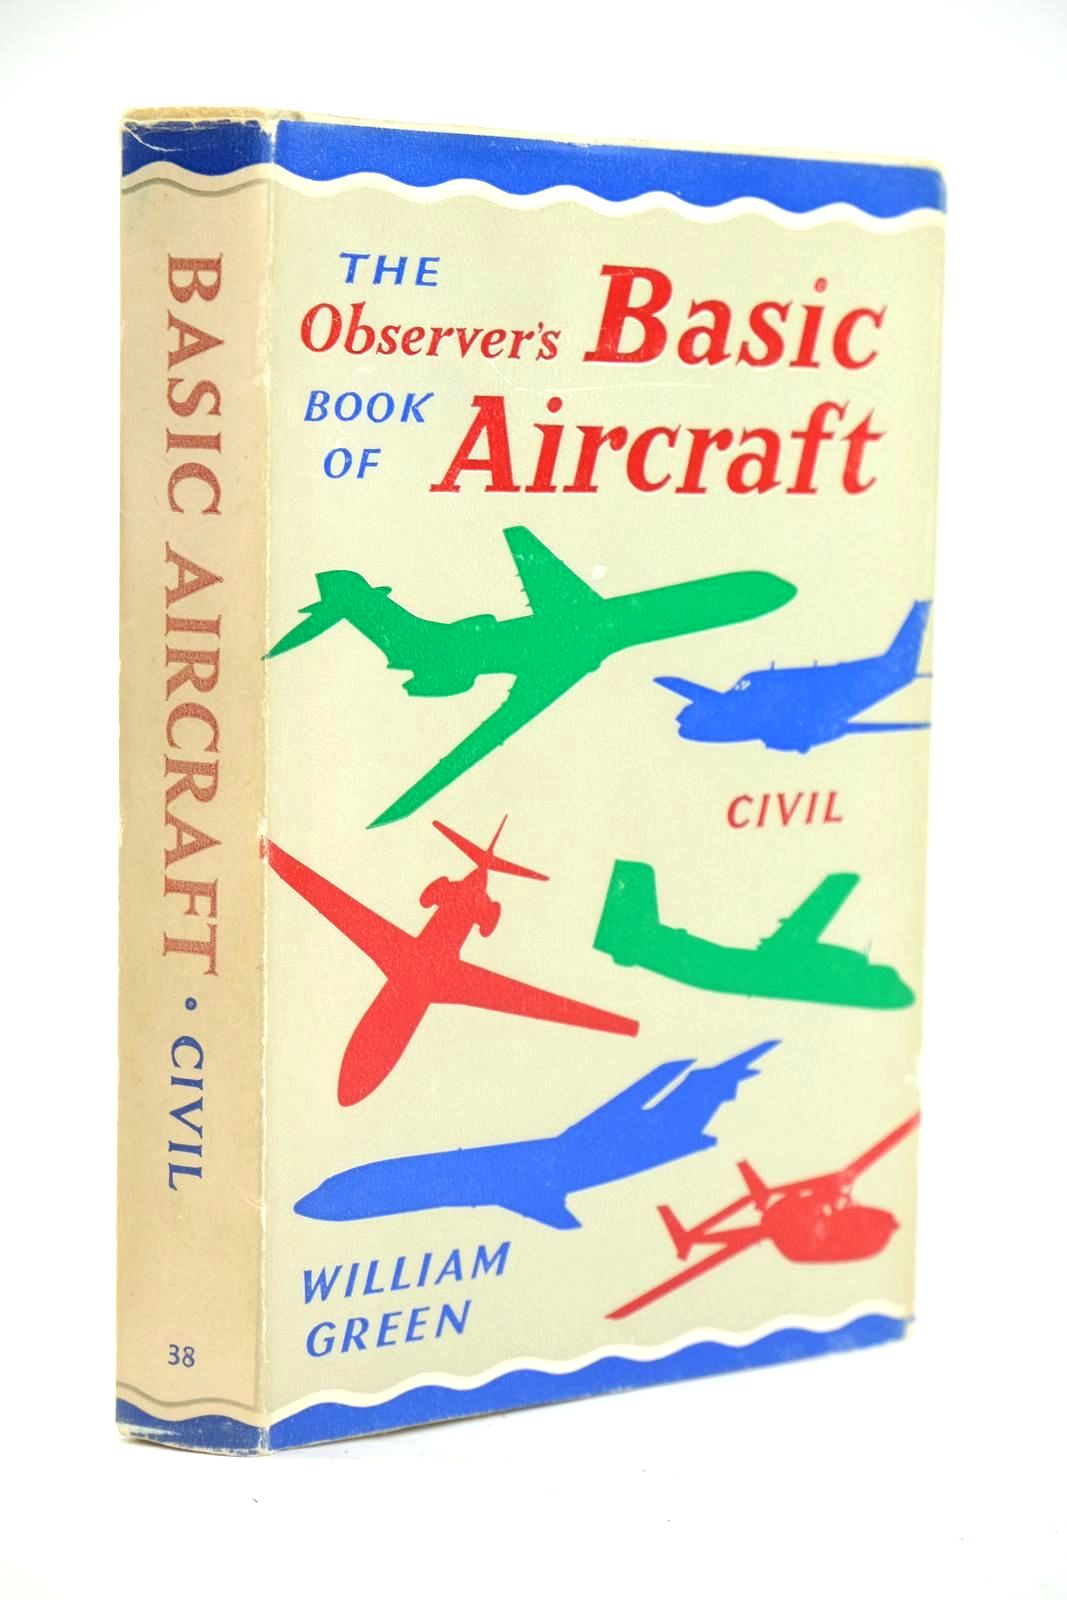 Photo of THE OBSERVER'S BOOK OF BASIC AIRCRAFT: CIVIL written by Green, William illustrated by Punnett, Dennis published by Frederick Warne & Co Ltd. (STOCK CODE: 1319657)  for sale by Stella & Rose's Books